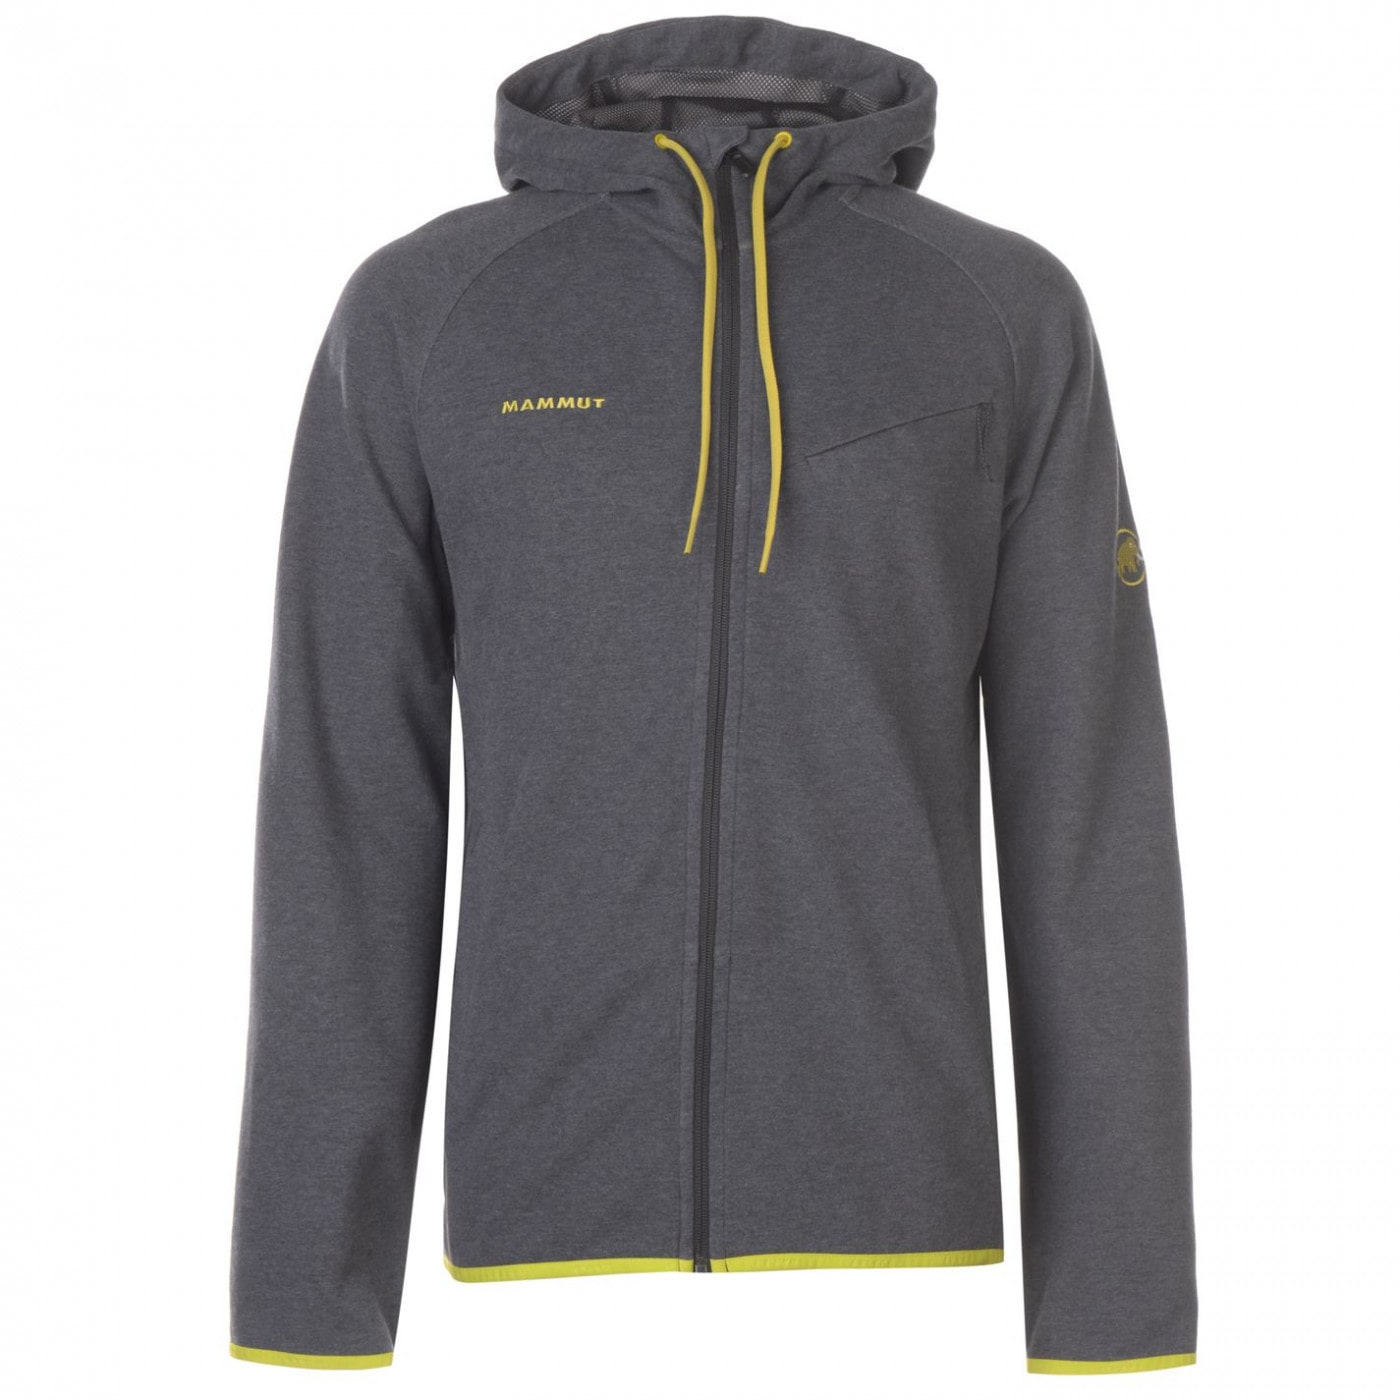 Mammut Logo Hooded Jacket Mens